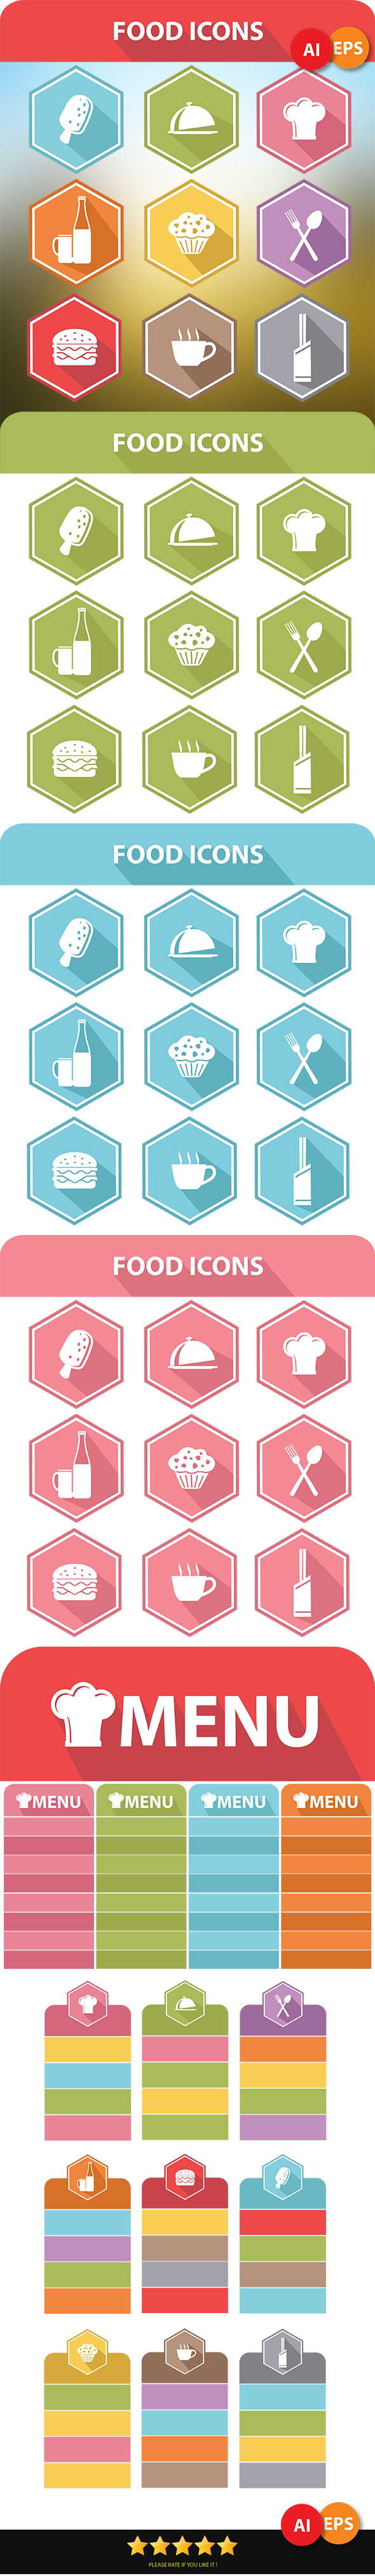 GraphicRiver 9 Food Icons & Menu Elements 6801546